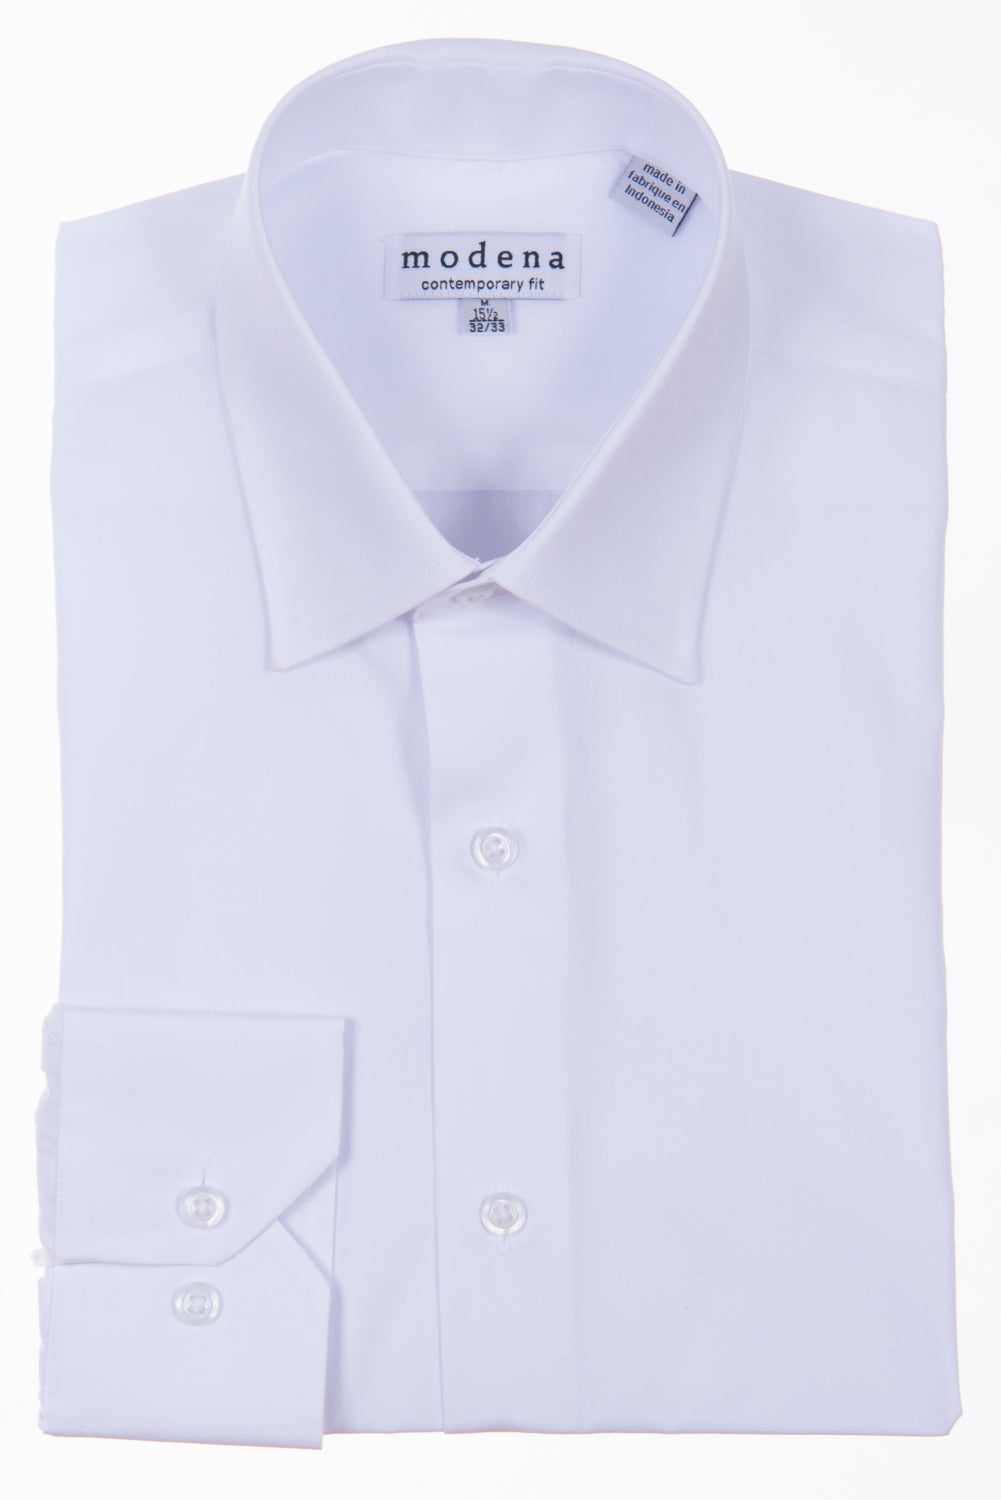 Modena - White - Solid - Cotton Blend - Dress Shirt - Contemporary Fit.